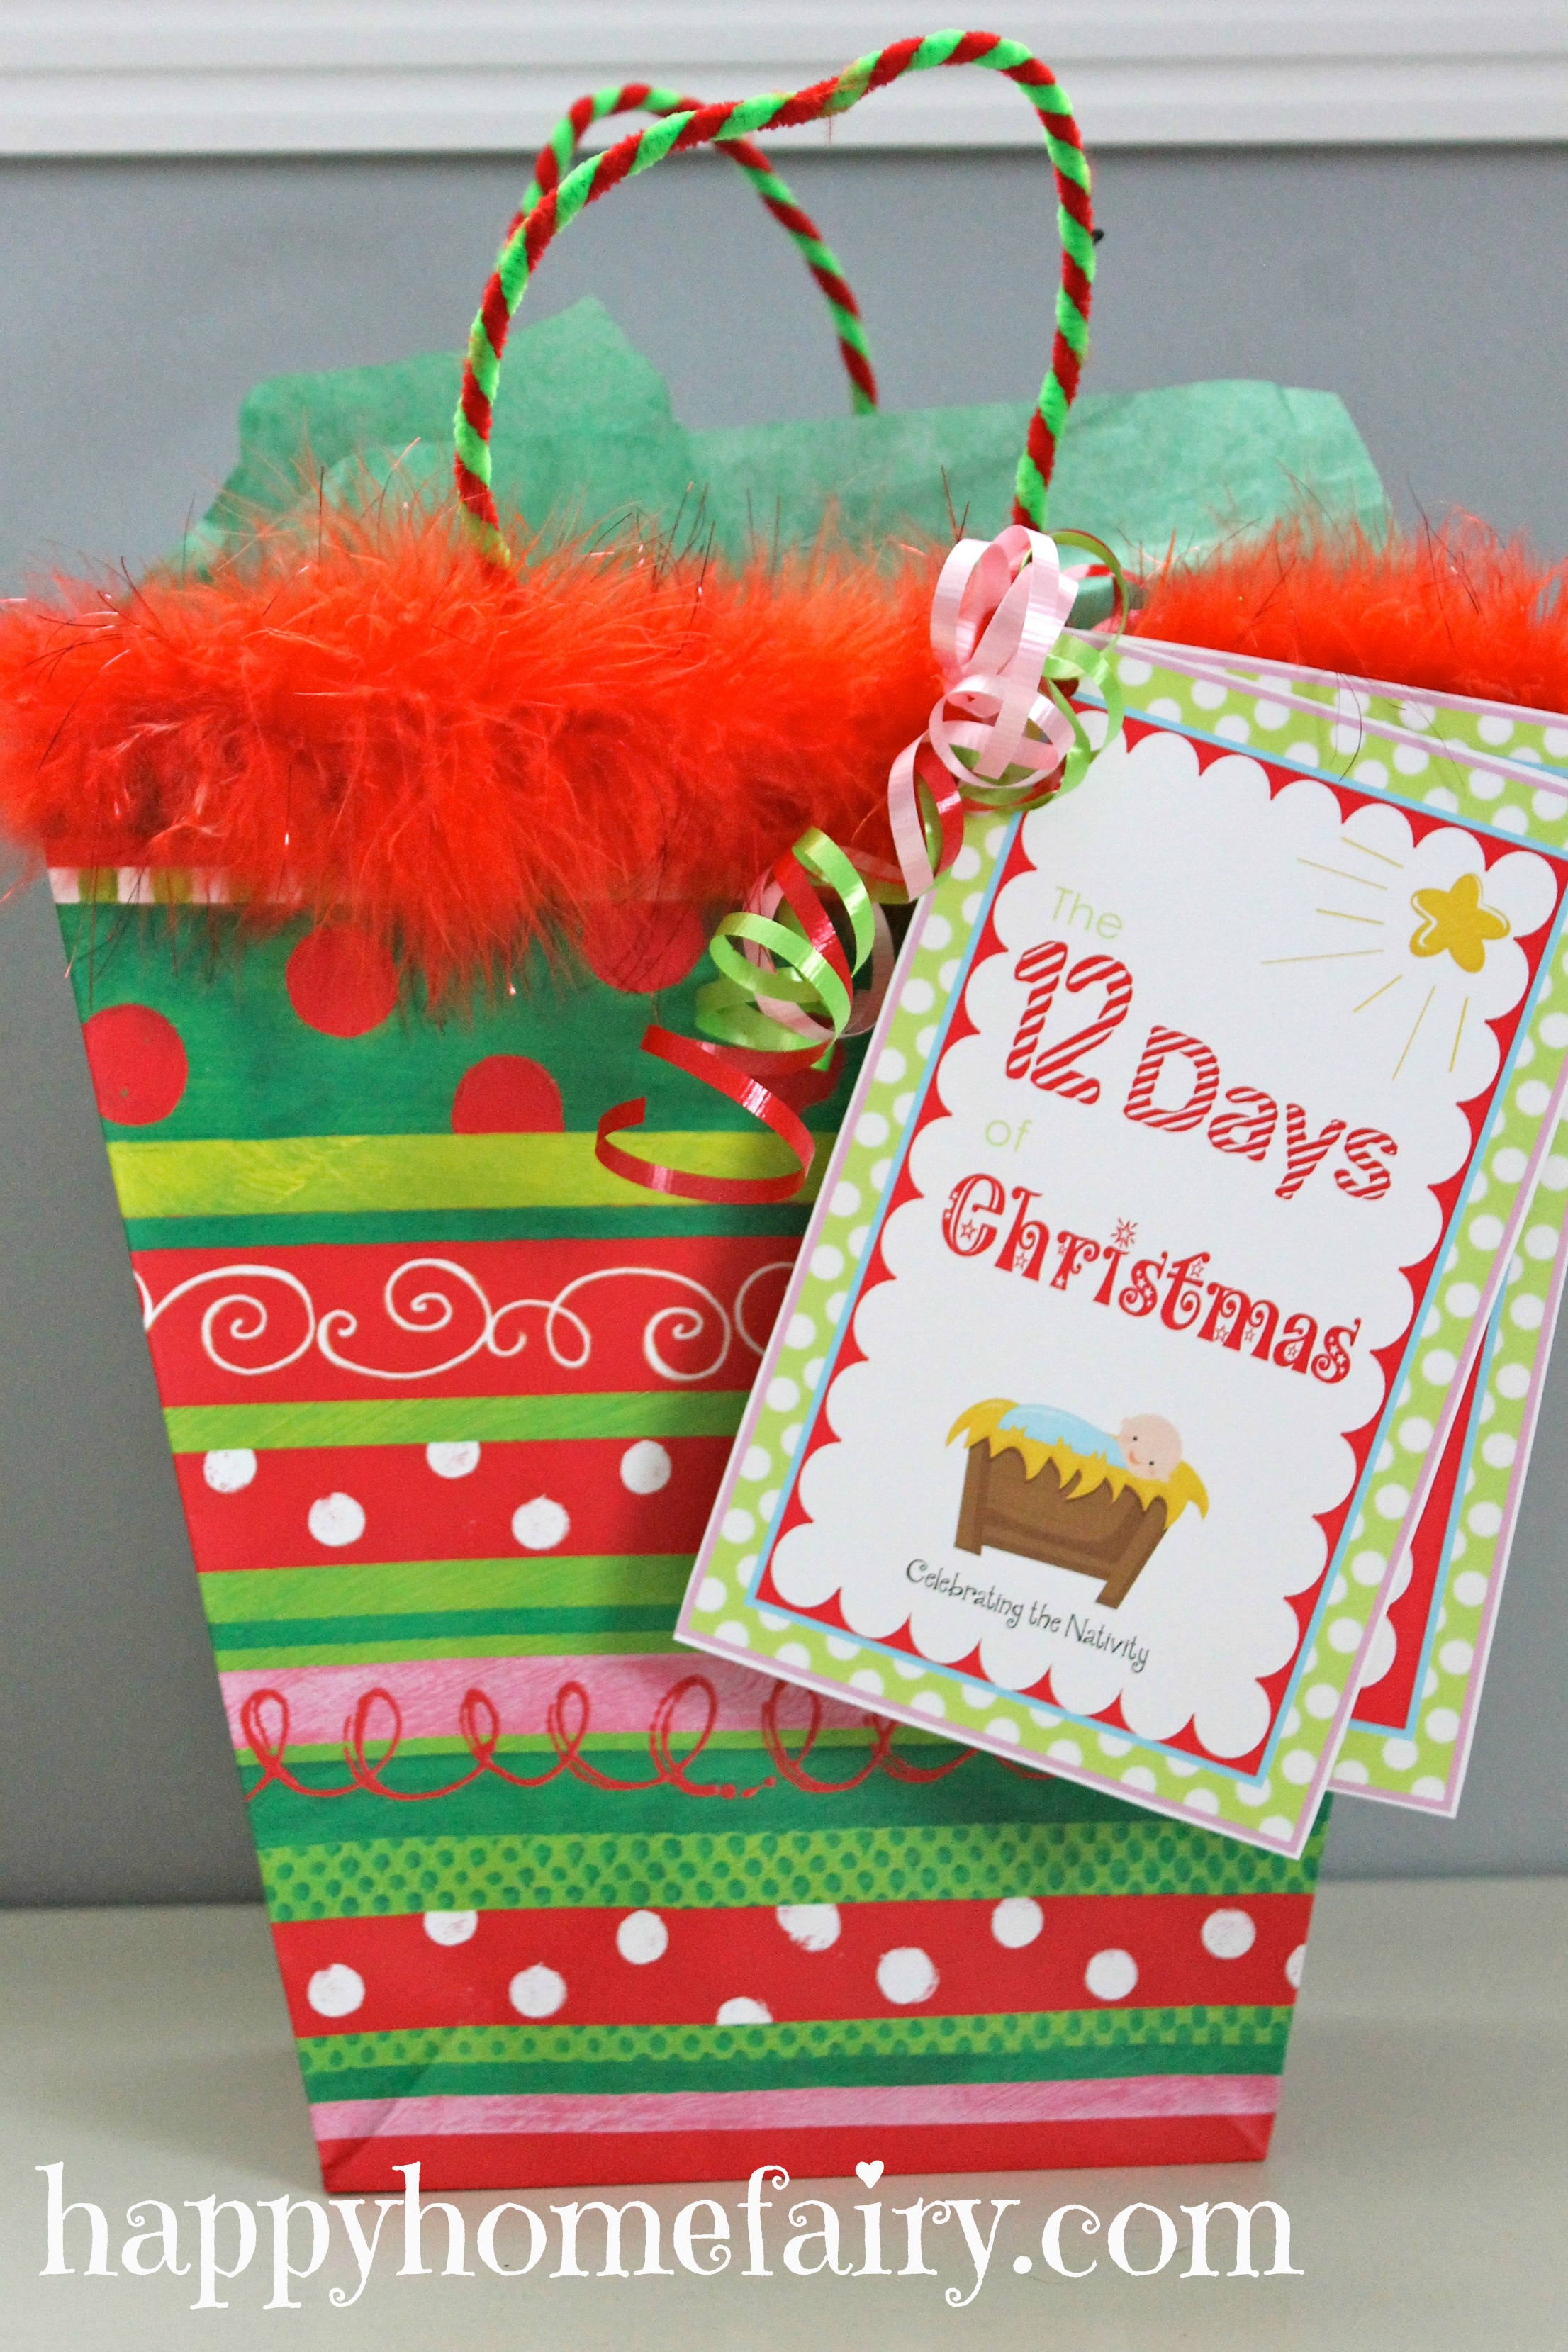 How Many Gifts Are In The Twelve Days Of Christmas.The 12 Days Before Christmas A Celebration Of The Nativity